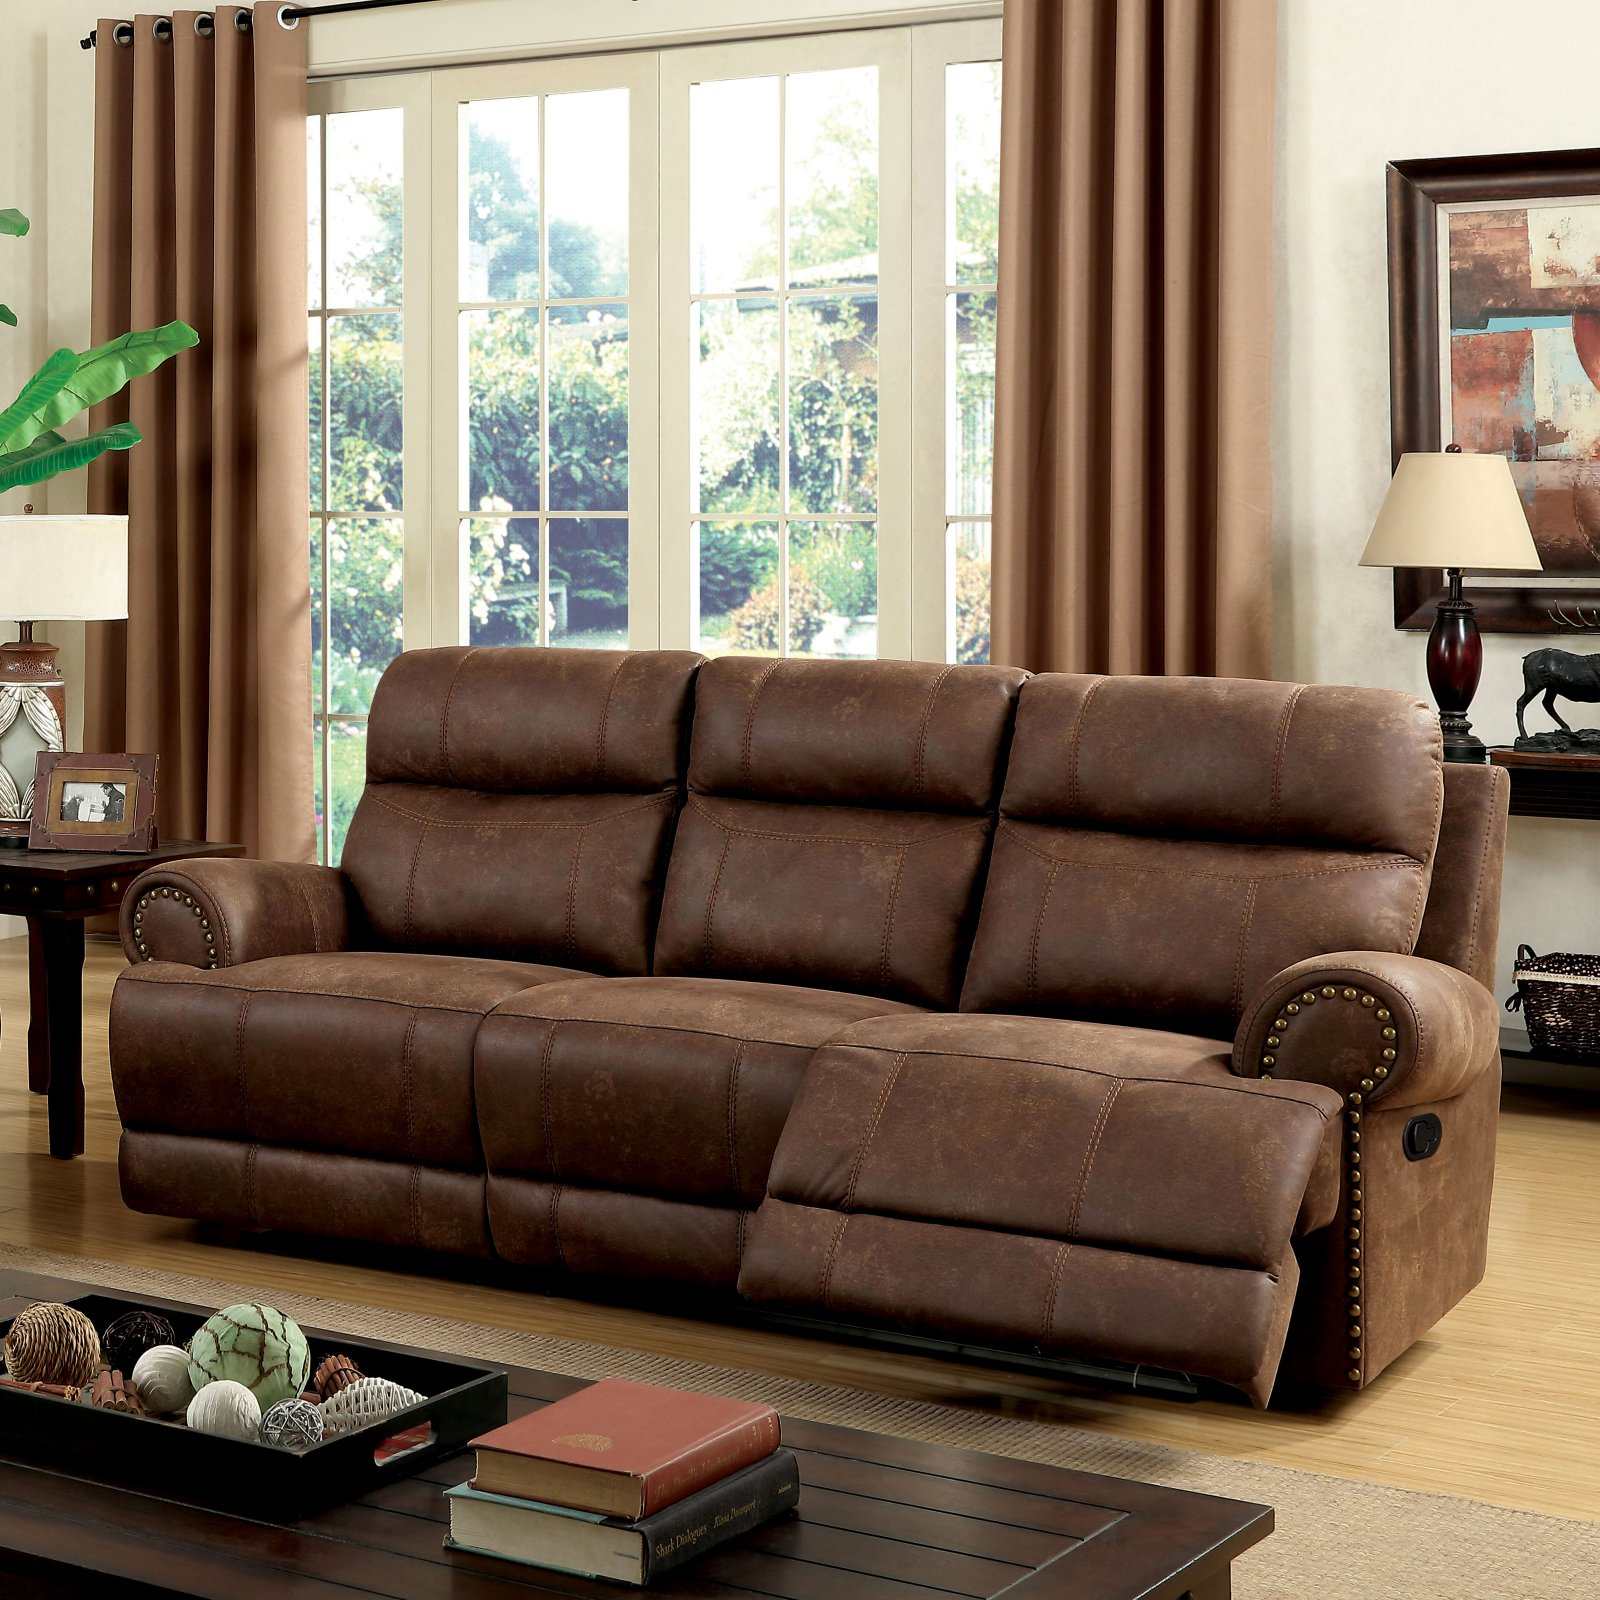 Furniture of America Lencho Transitional Style Plush Recliner Loveseat